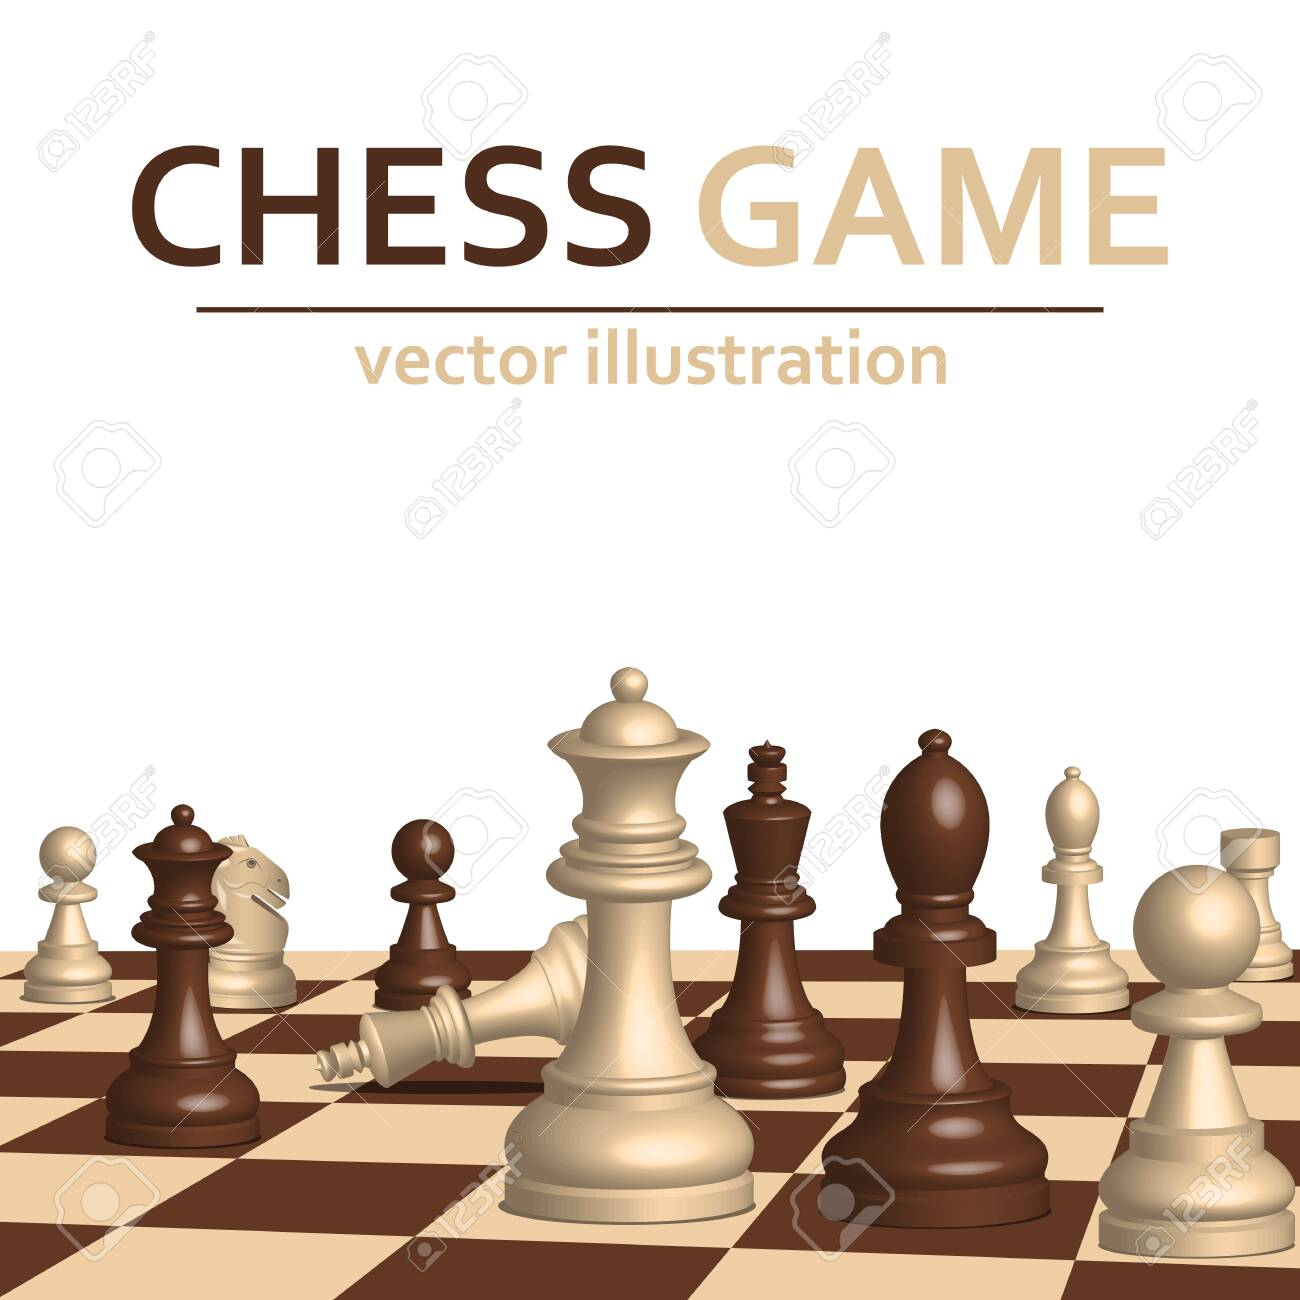 3d chess game pieces vector design illustration isolated on white background - 151109382